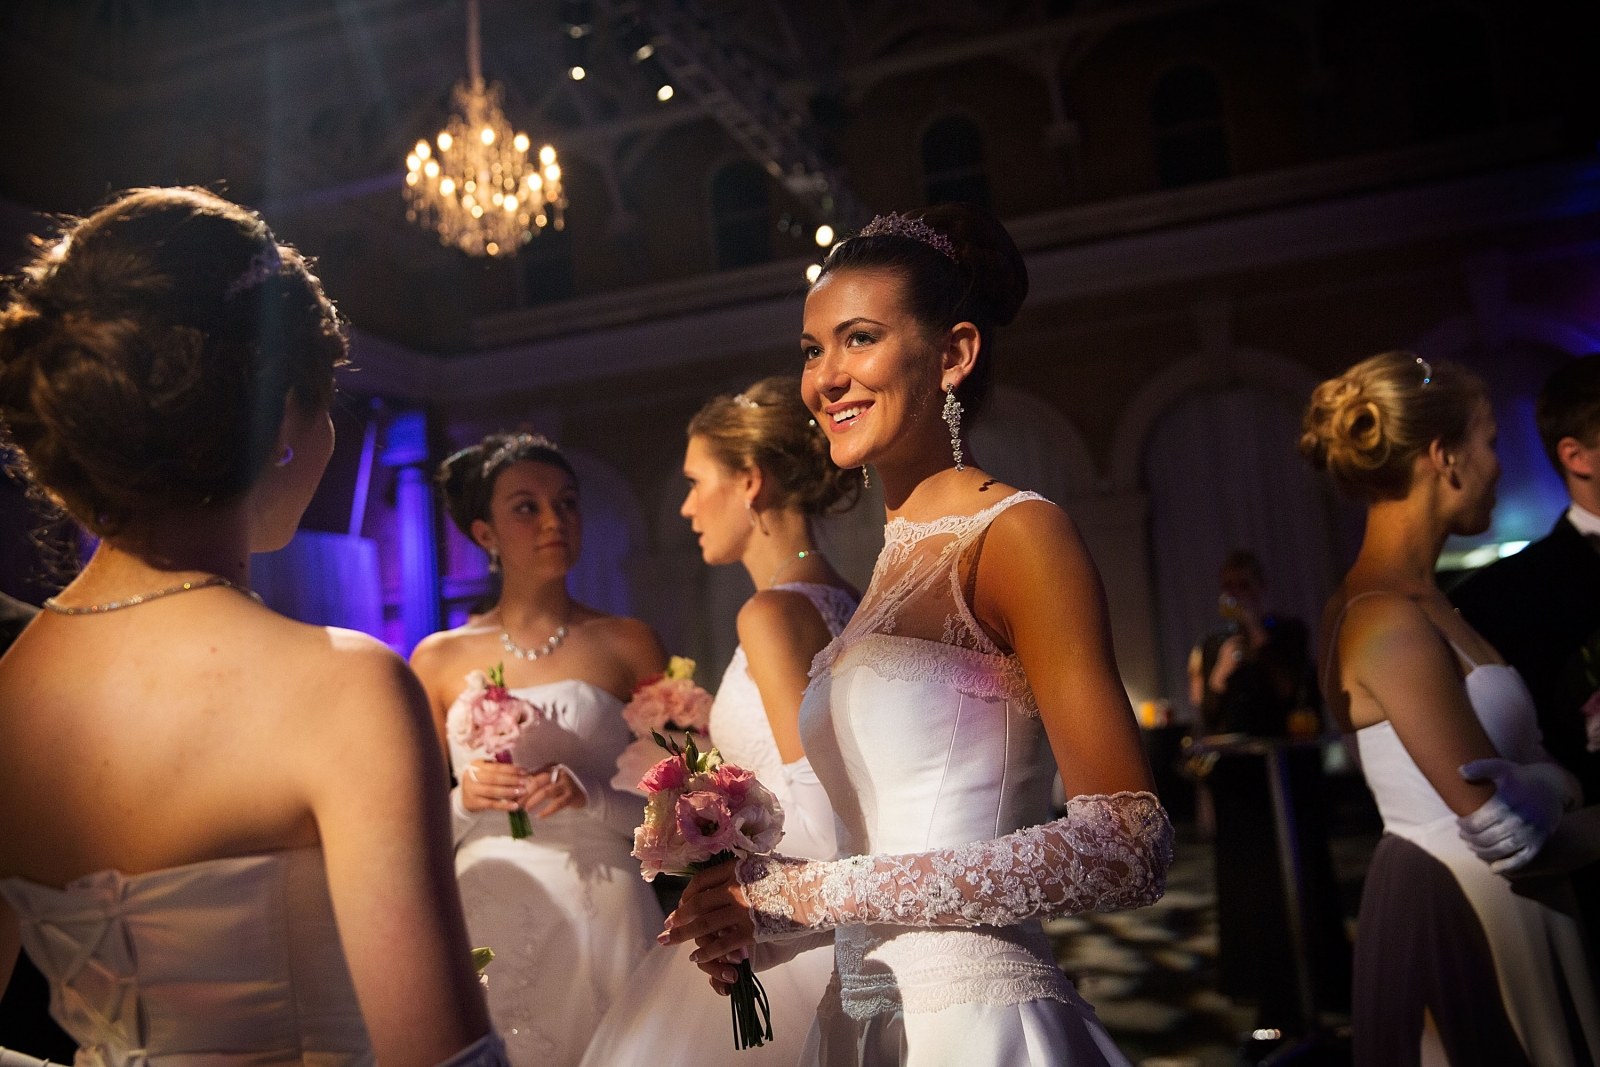 Debutantes at the Russian Ball in London, which aims to recreate the splendour of pre-Revolutionary Russian social functions. (Getty)